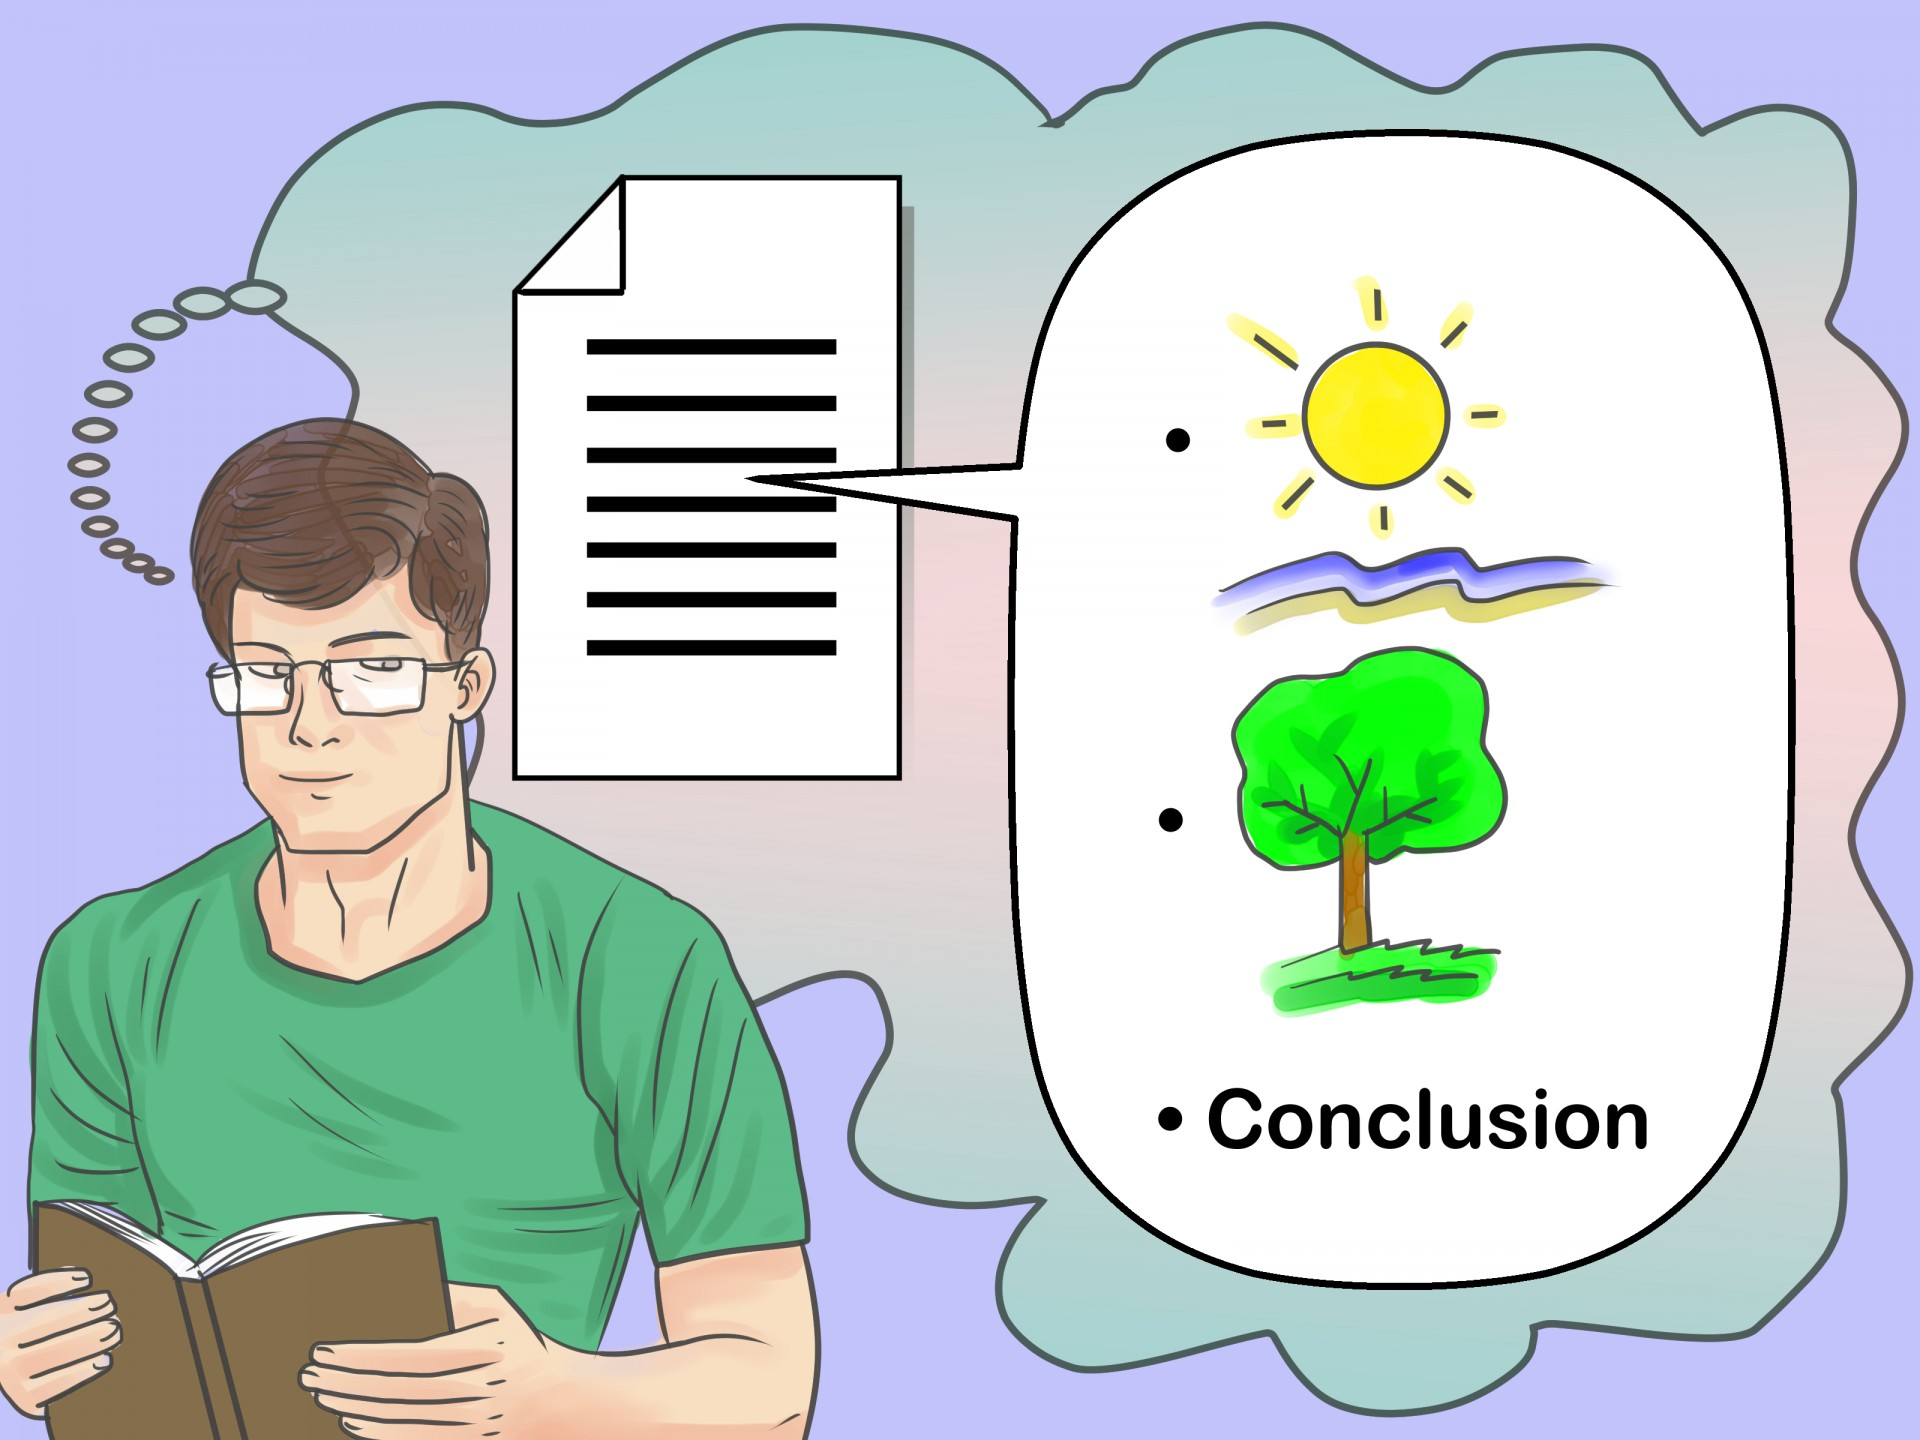 016 Essay Example Compare Contrast Write And Step Version Fascinating Topics Graphic Organizer Julius Caesar Answers High School 1920